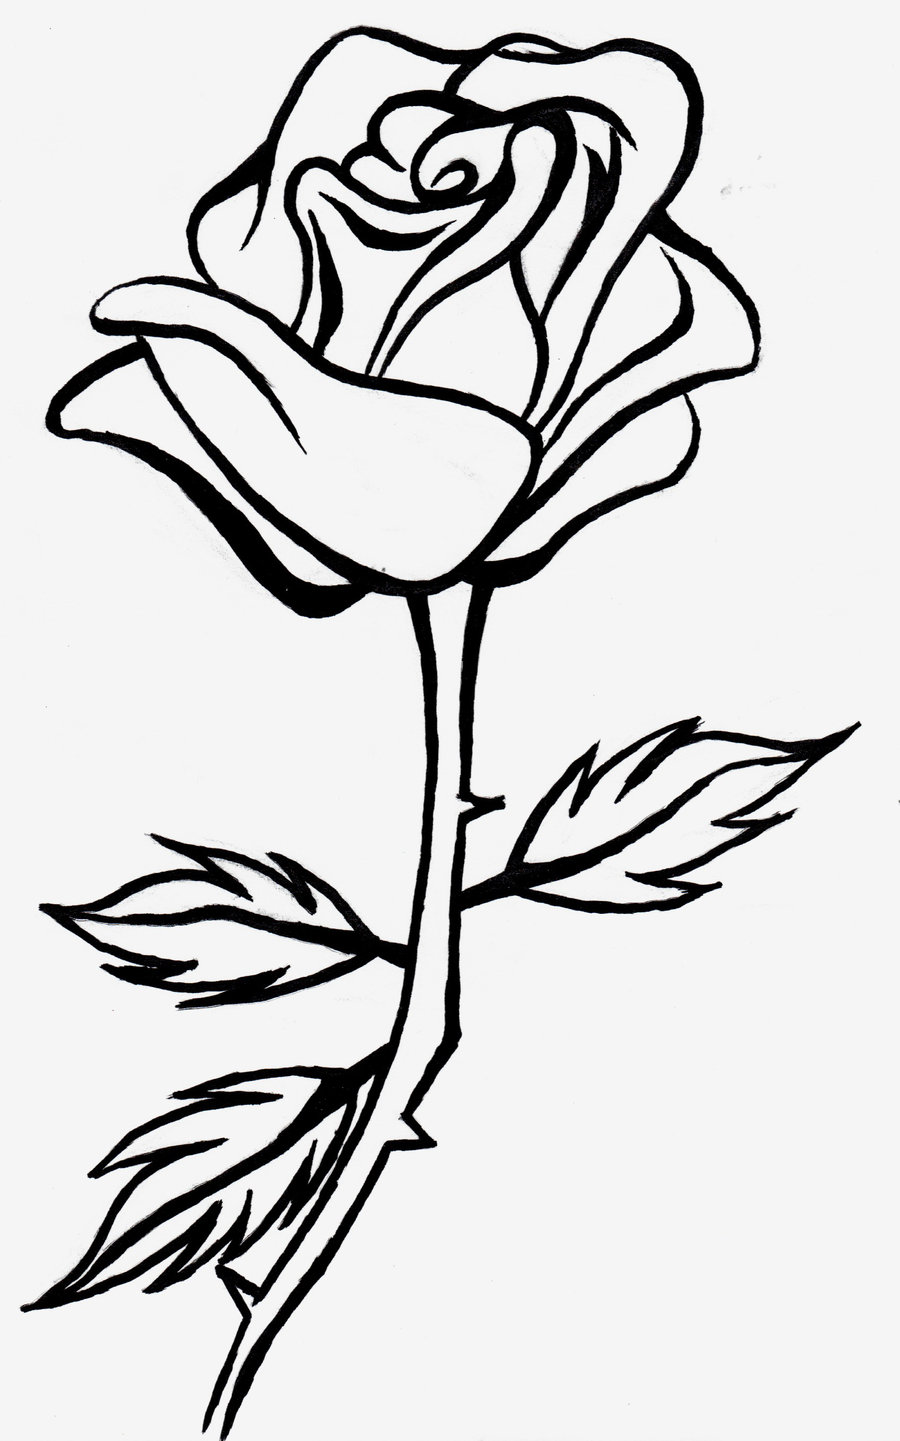 Roses Free Rose Clipart Public Domain Fl-Roses free rose clipart public domain flower clip art images and 2 2-18